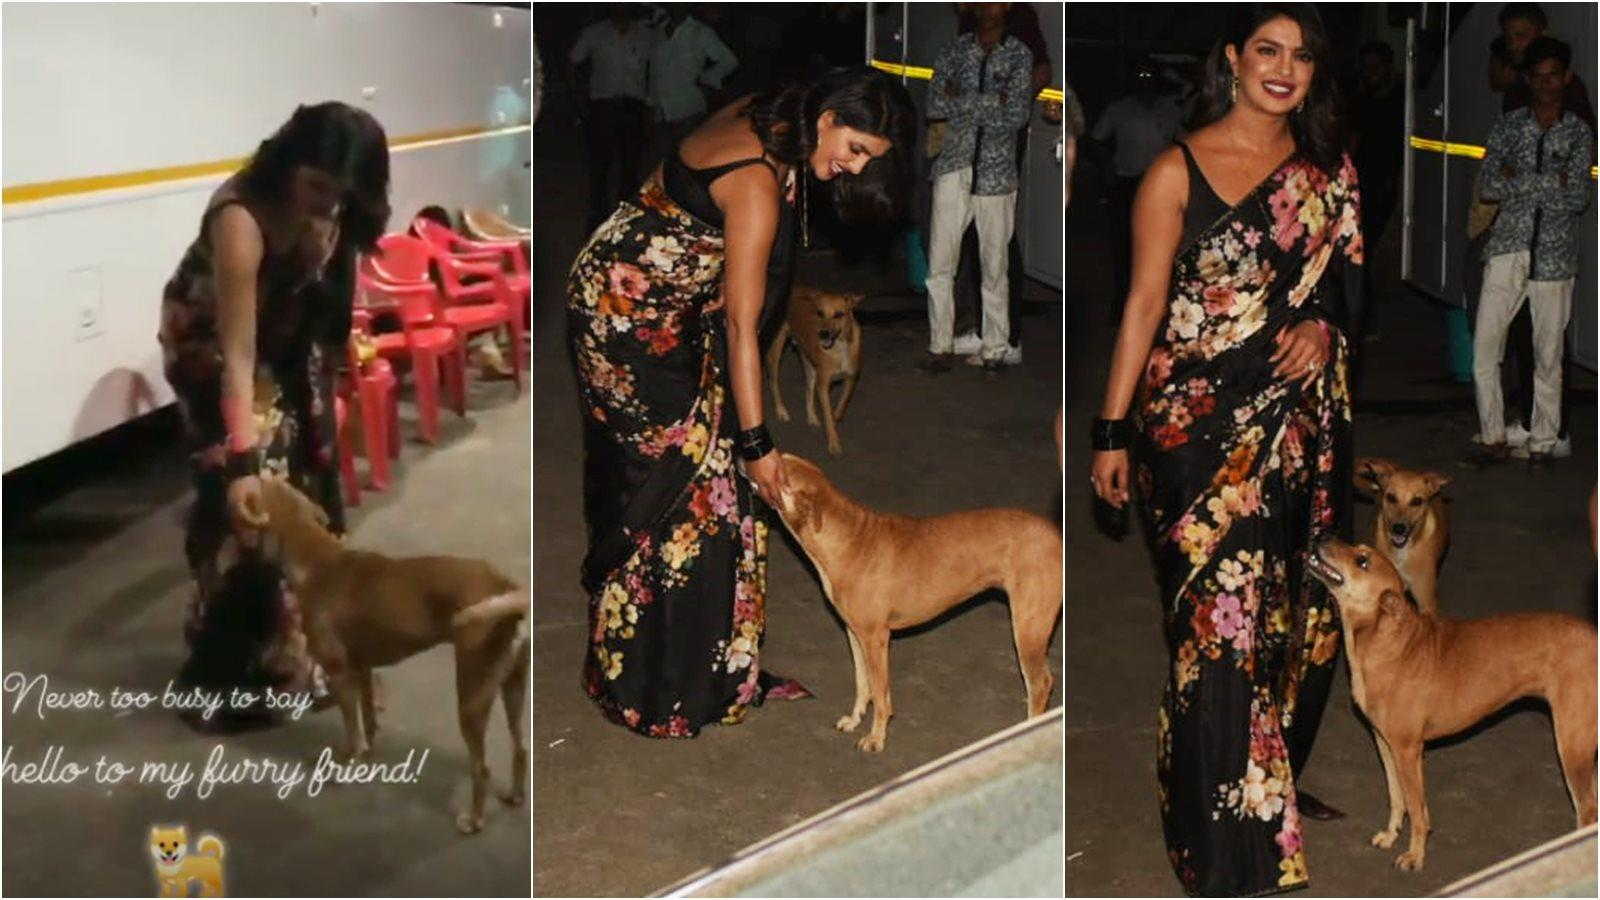 Priyanka Chopra pets a stray dog during 'The Sky Is Pink' promotion, steals the limelight in black sari